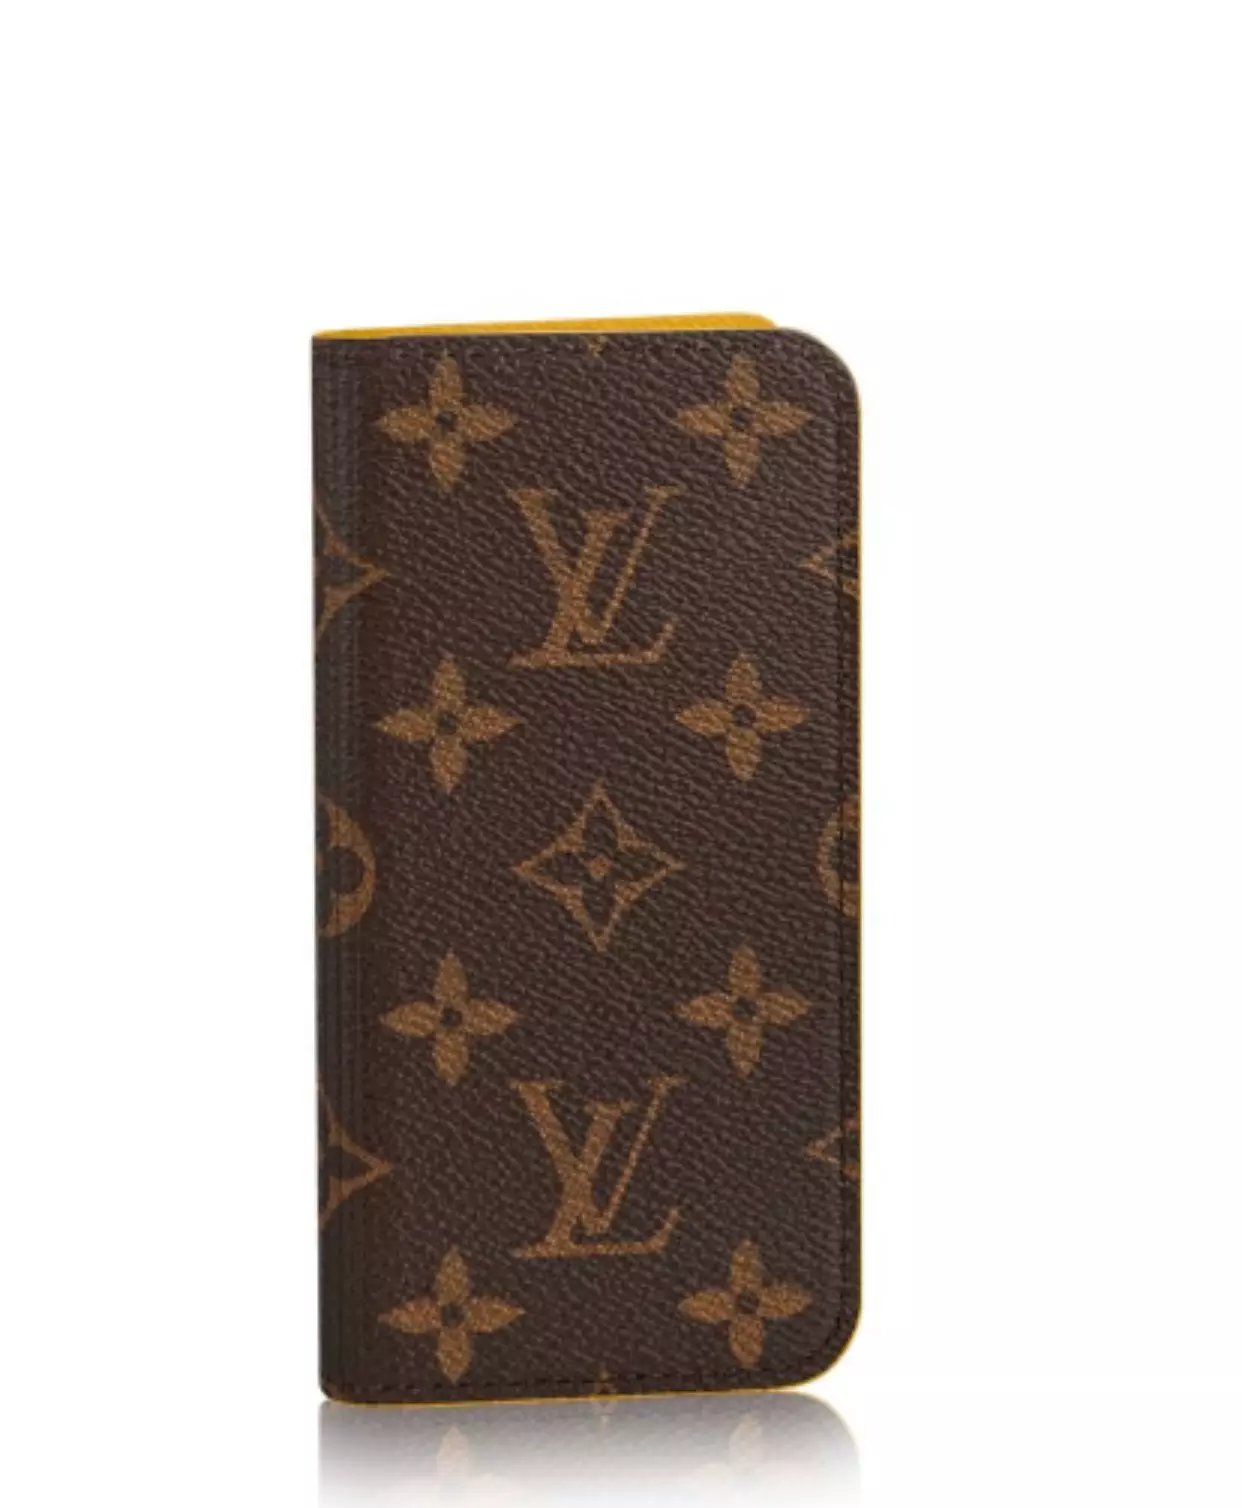 fashion iphone 8 cases buy iphone 8 cases online Louis Vuitton iphone 8 case case i phone shop phone cases cover for mobile phone iphone 8 case designer where can i buy cell phone cases iphone cases for 8